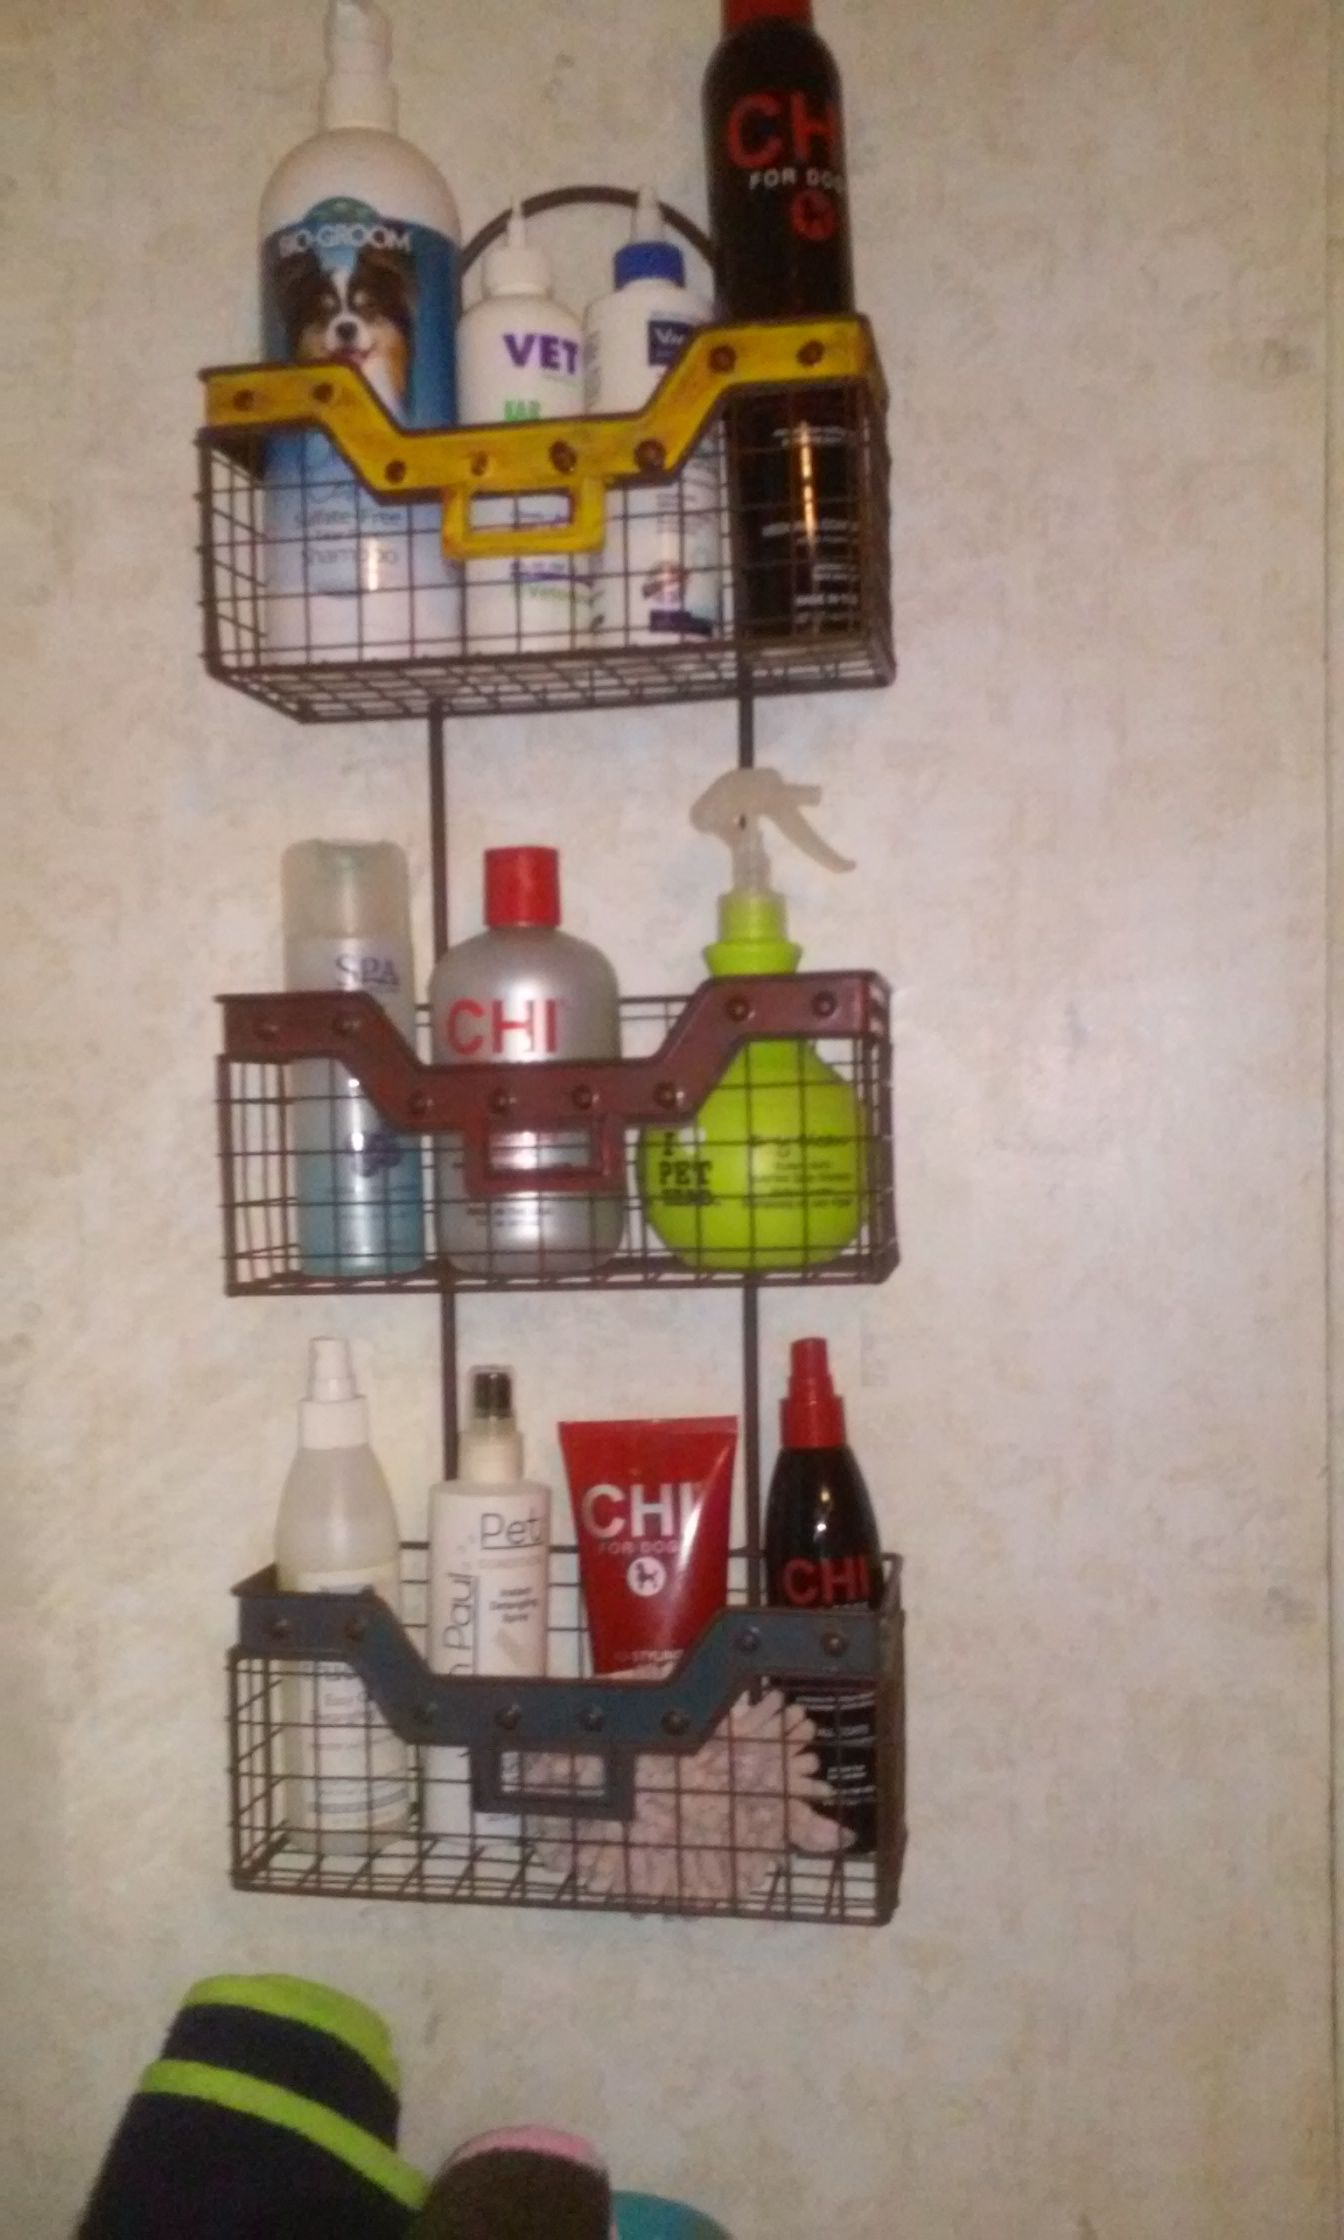 I got this rack at MIchael's for 70 percent off a while ago. Finally decided on a use for it. I hung it in my laundry room next to my deep sink. It holds shampoos, styling products, and ear cleaners for quick and easy dog grooming.Next I'll add some s-hooks at the bottom to hang the paw mops and washcloths for quick face washes.